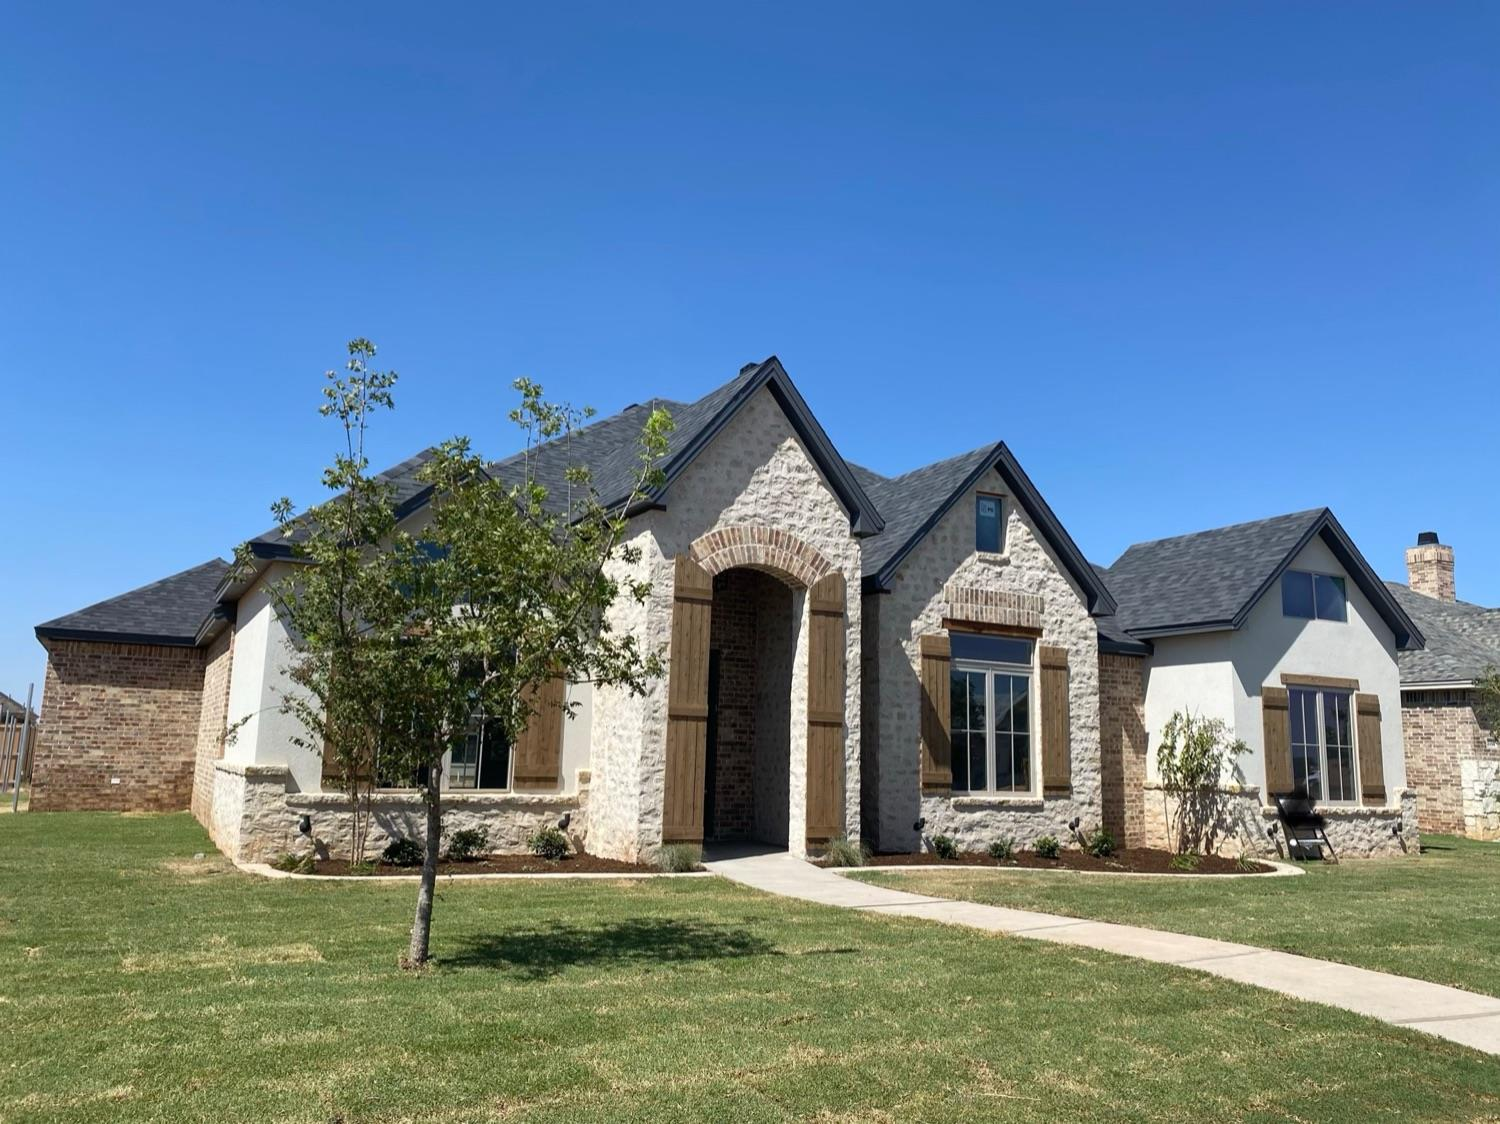 Incredible 4/3/2 new build by Clearview Custom Homes in highly sought after Cooper ISD, in the up and coming development of Hatton Place! This beautiful home has an open concept, a mudroom with lockers for storage, high end finishes, and room for the whole family! You won't want to miss this one!  Completion date August 2020